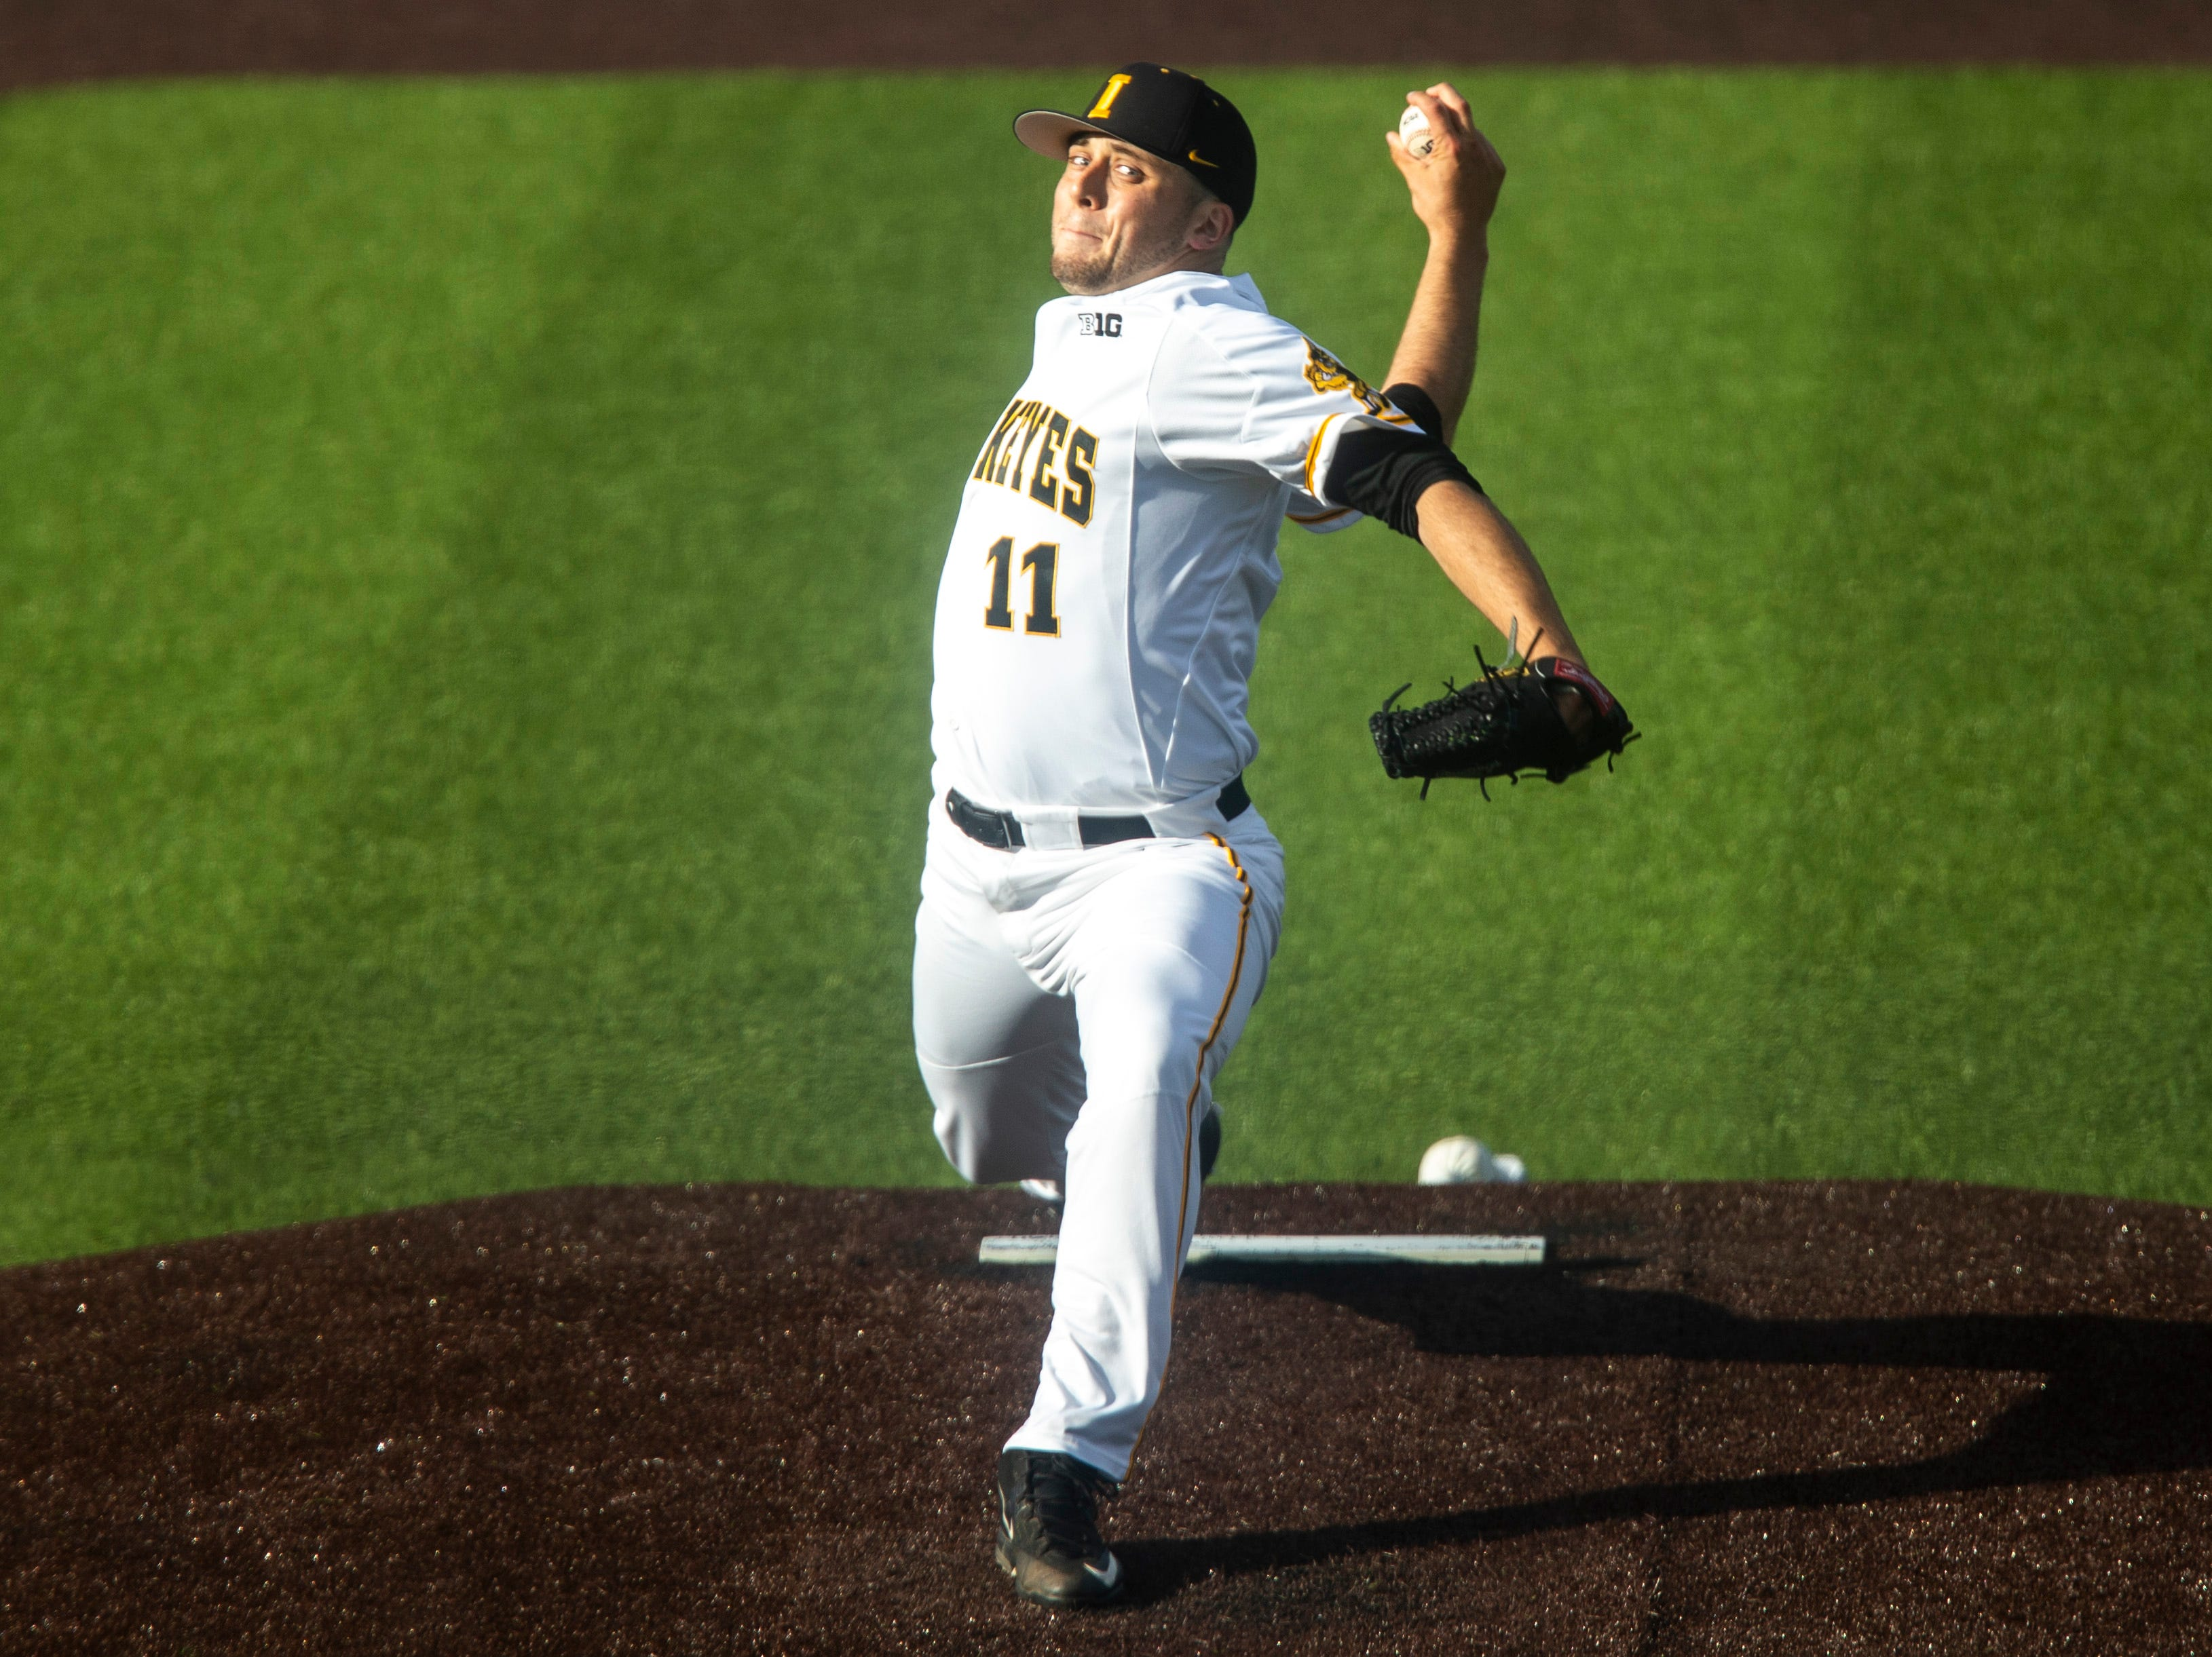 Iowa's Cole McDonald (11) delivers a pitch during a NCAA Big Ten Conference baseball game, Friday, May 10, 2019, at Duane Banks Field on the University of Iowa campus in Iowa City, Iowa.